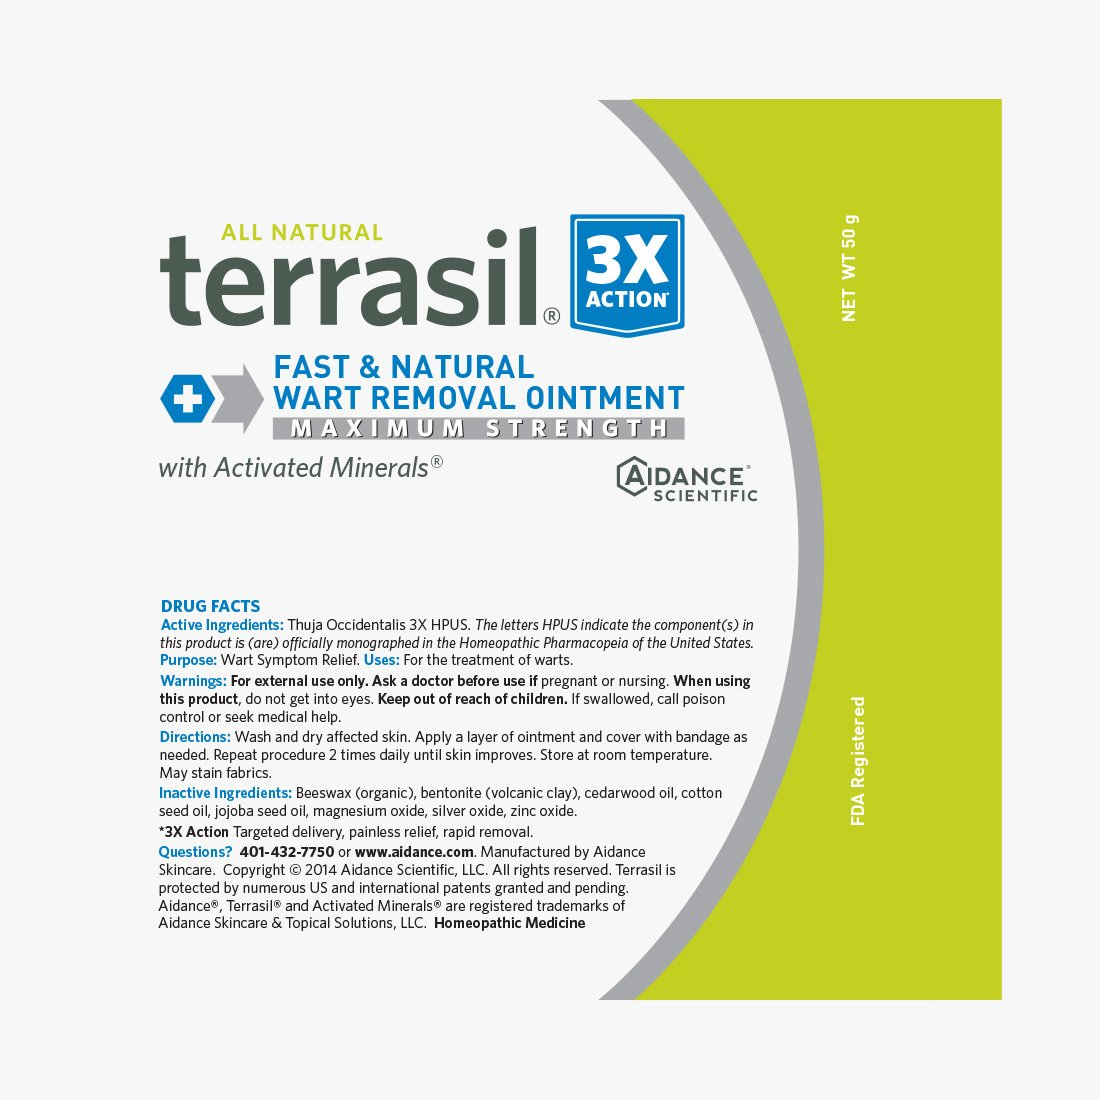 Terrasil Fast & Natural Wart Removal Ointment (50 Gram, Max) by Aidance Skincare & Topical Solutions